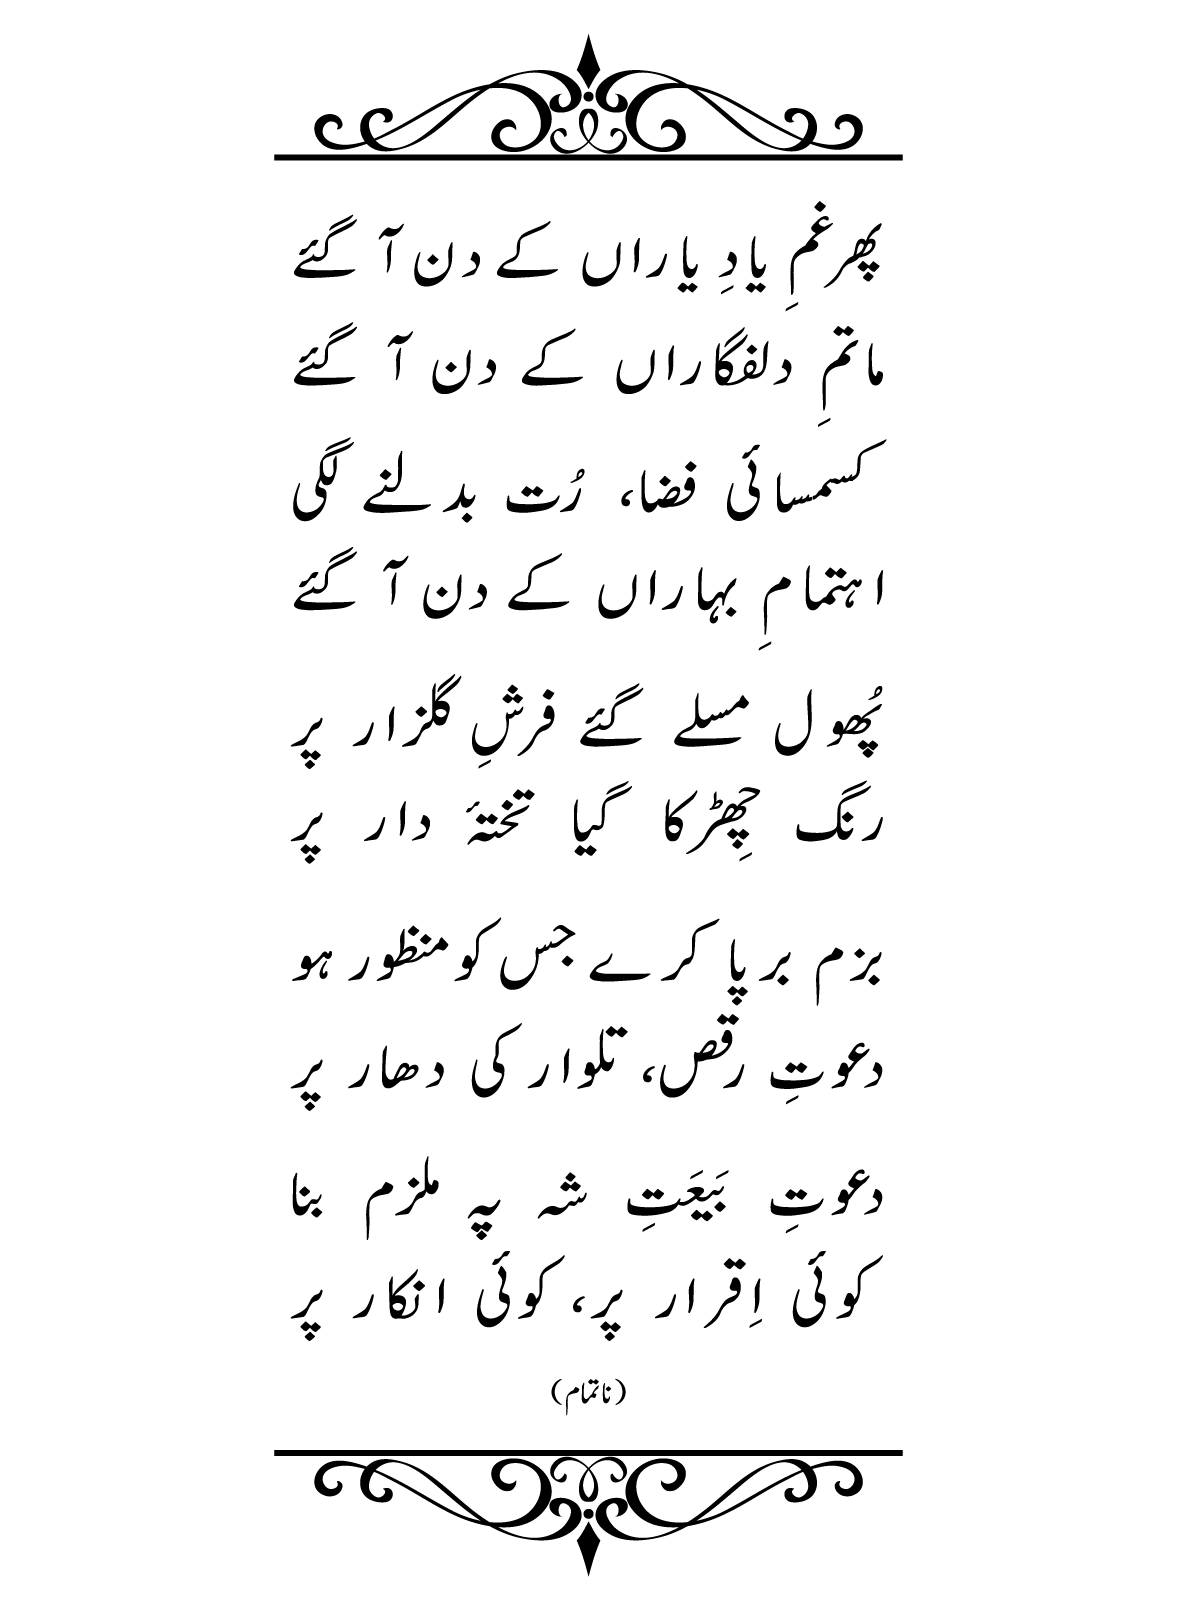 These lines were written by Faiz especially for the *Herald* magazine